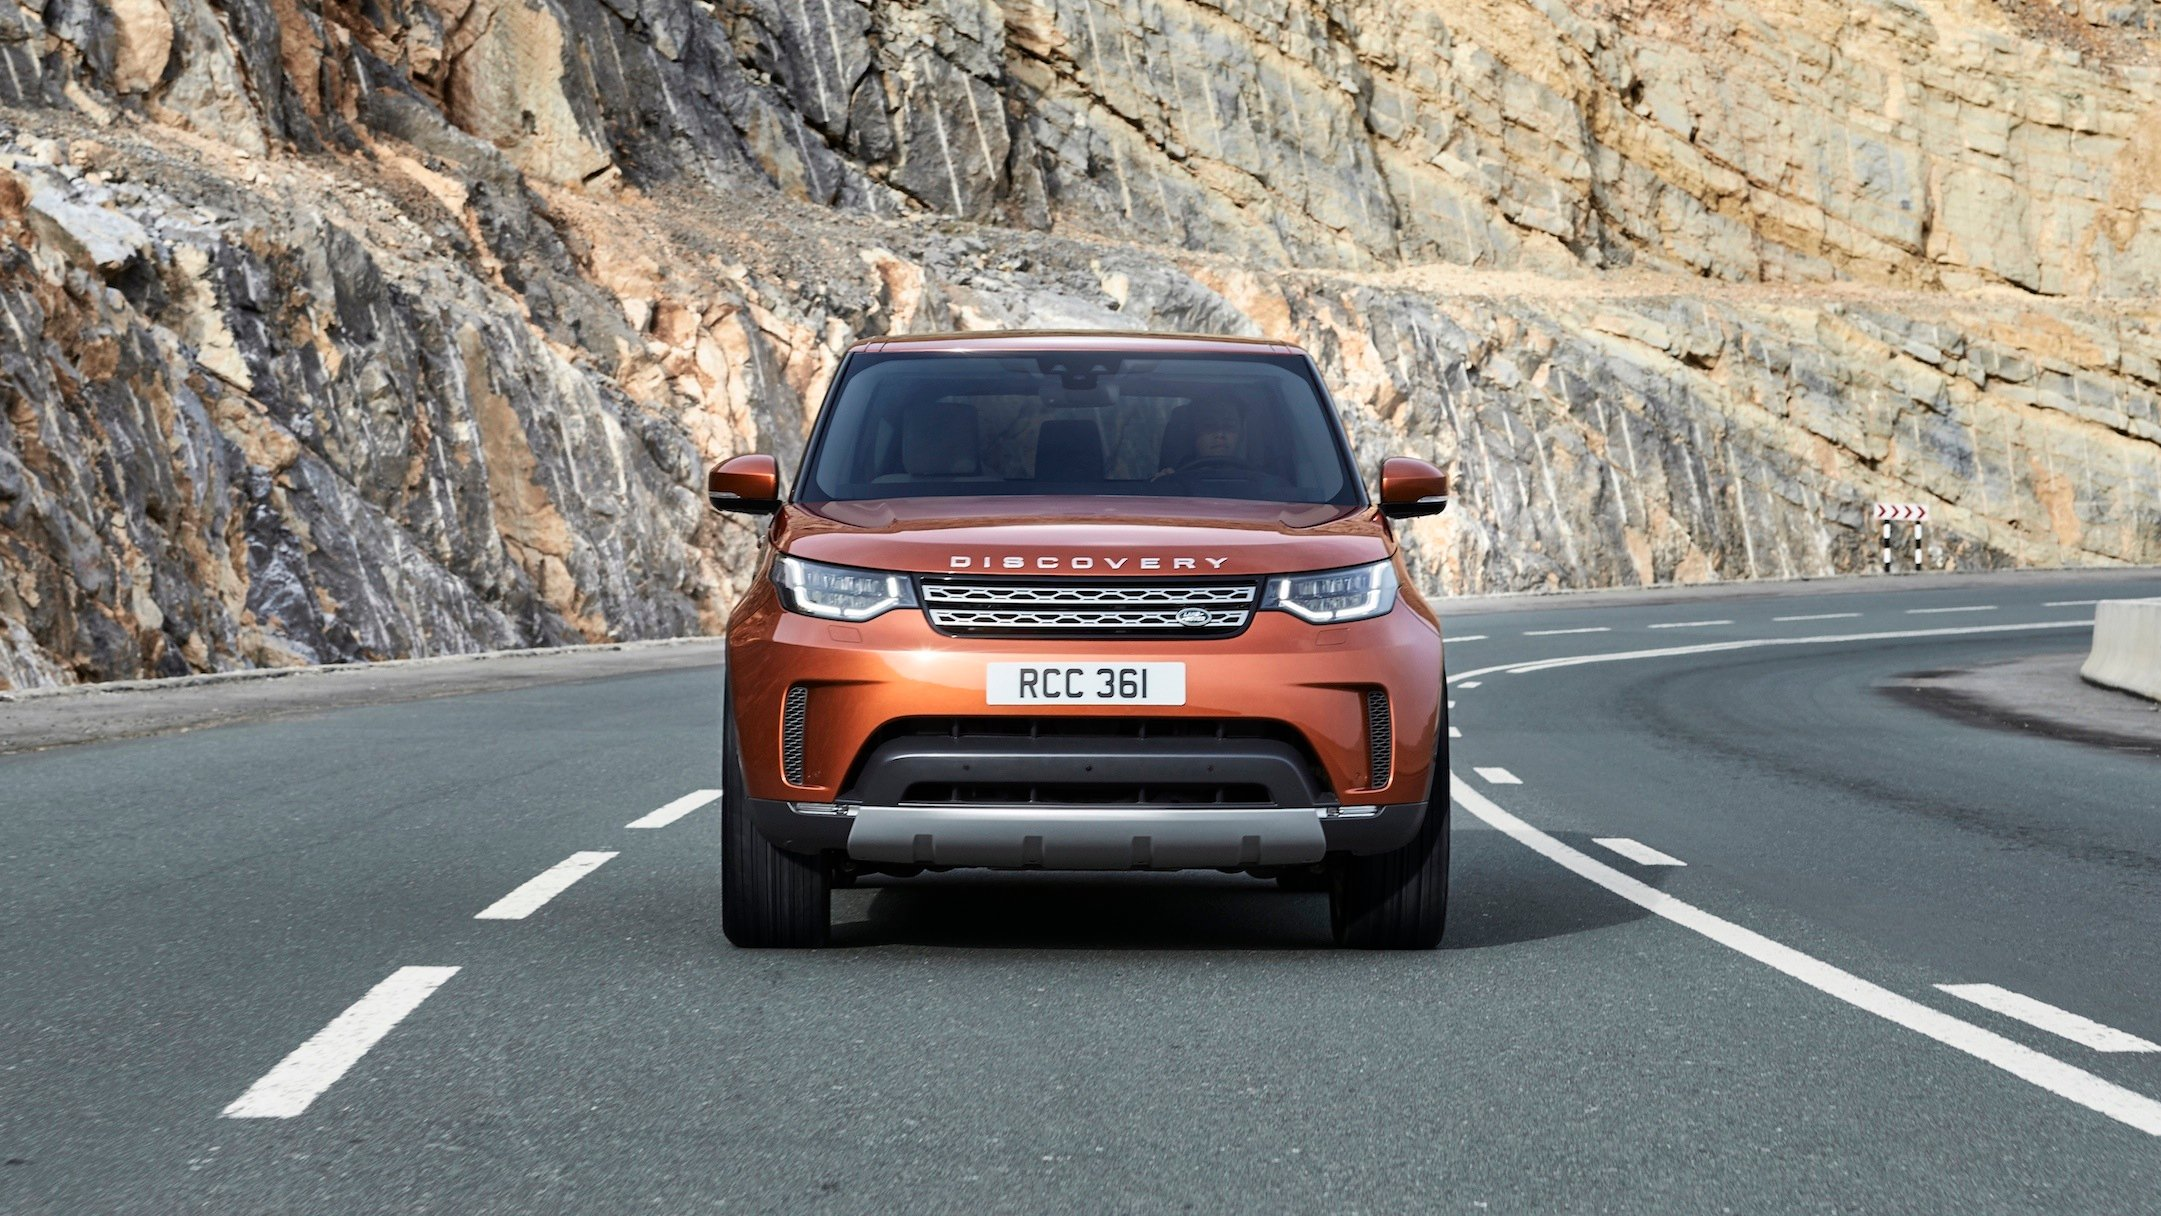 2017 land rover discovery revealed in paris full details autos post. Black Bedroom Furniture Sets. Home Design Ideas